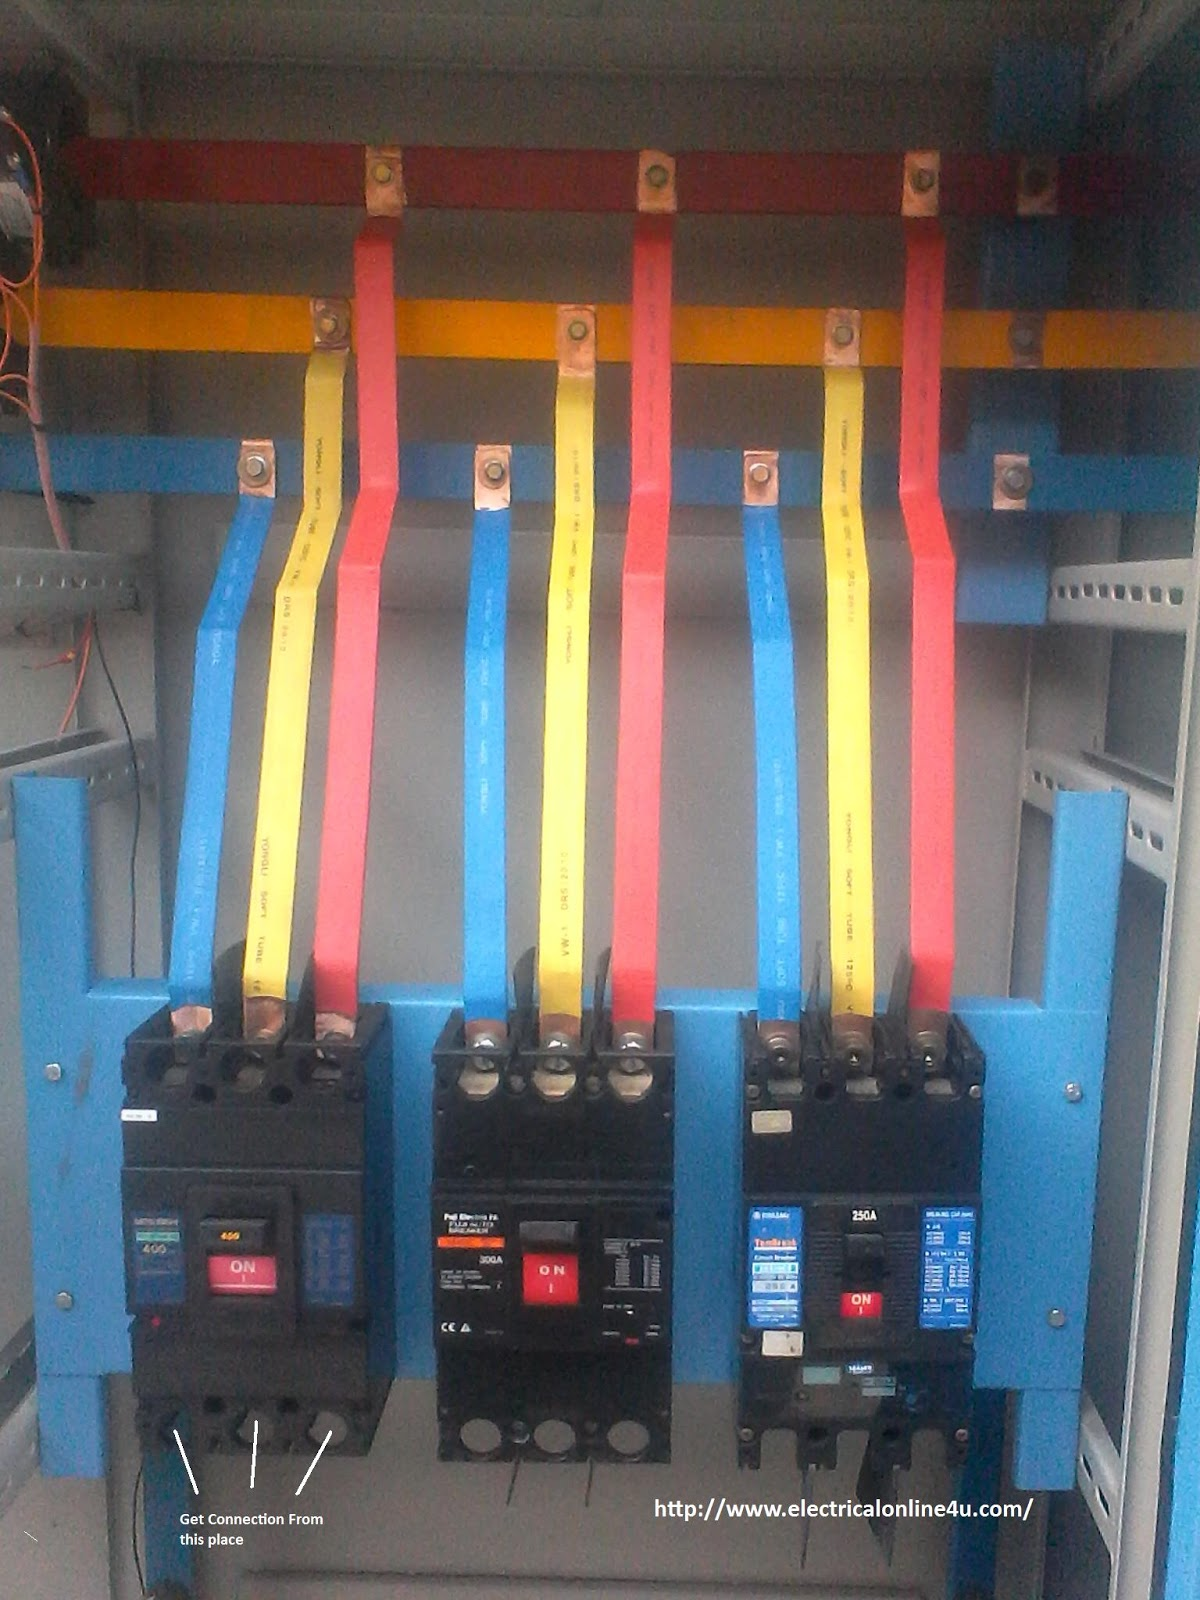 Circuit%2BBreaker%2BInstallation%2BFor%2BThree%2BPhase%2BSupply circuit breaker installation for three phase supply 3 phase 3 phase electrical wiring diagram at aneh.co